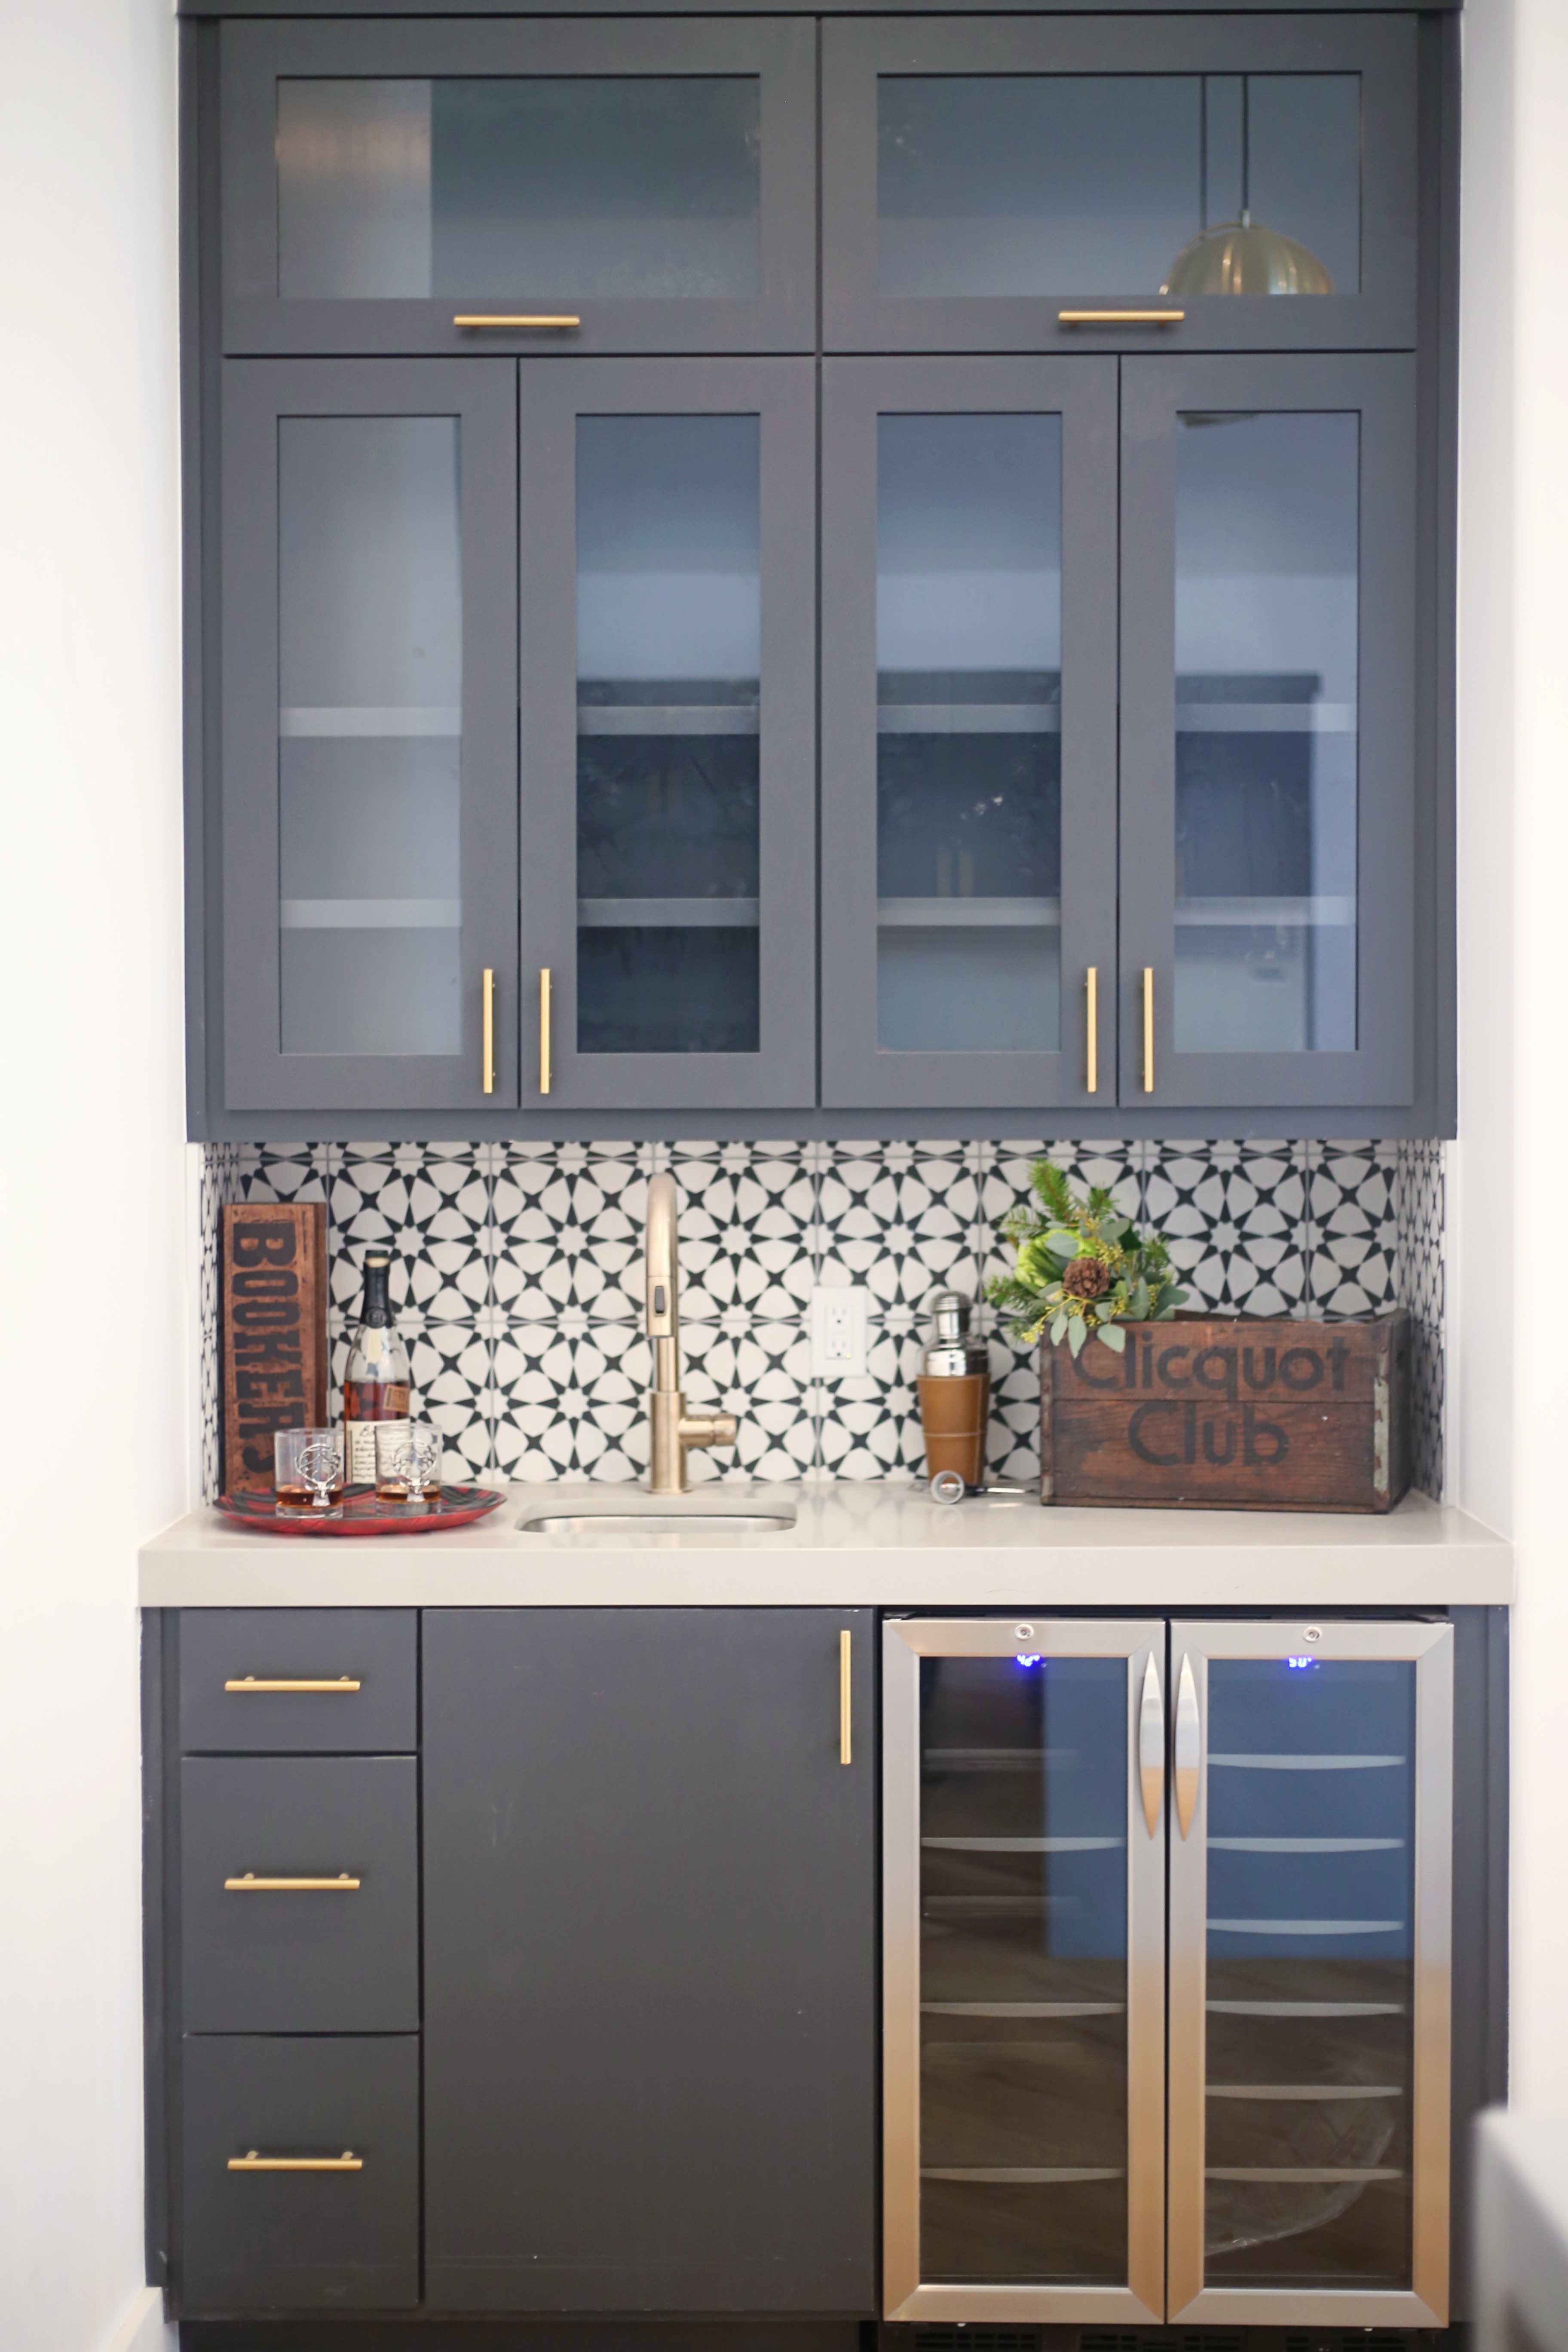 All Photos Are From Sarah Baker And Cabinets Woodstock Cabinet Co